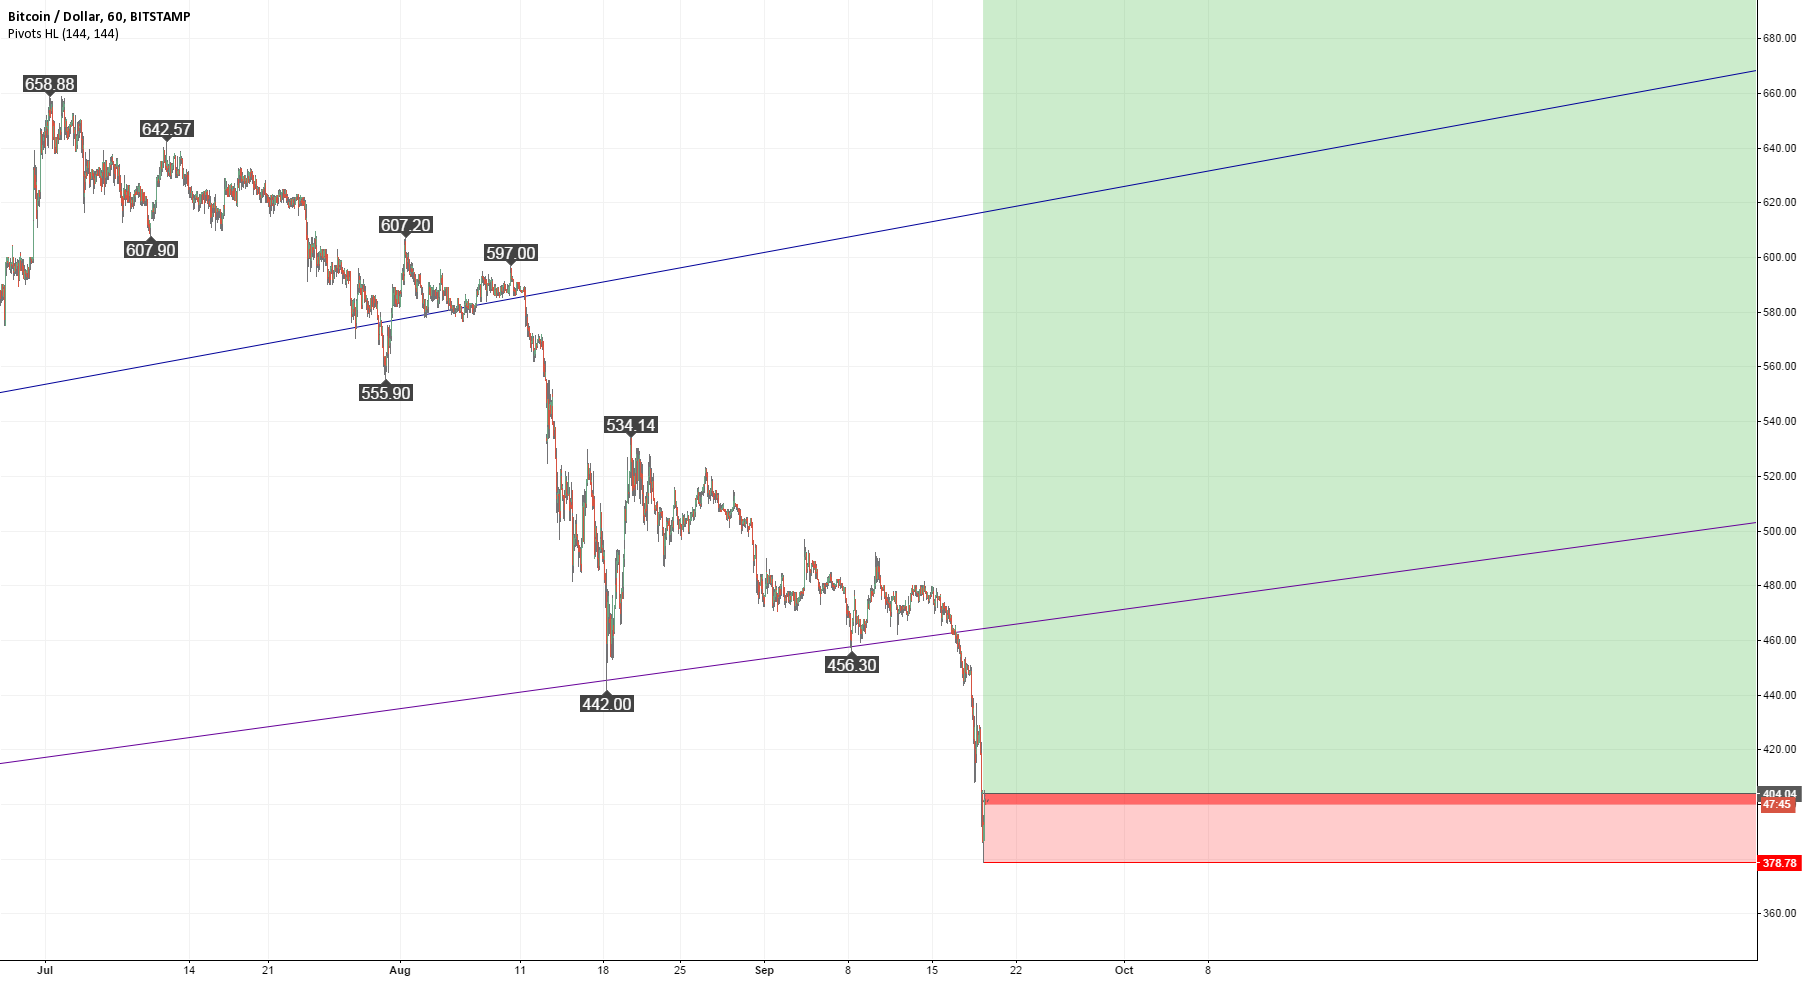 Short-term buying opportunity above 400 US Dollar